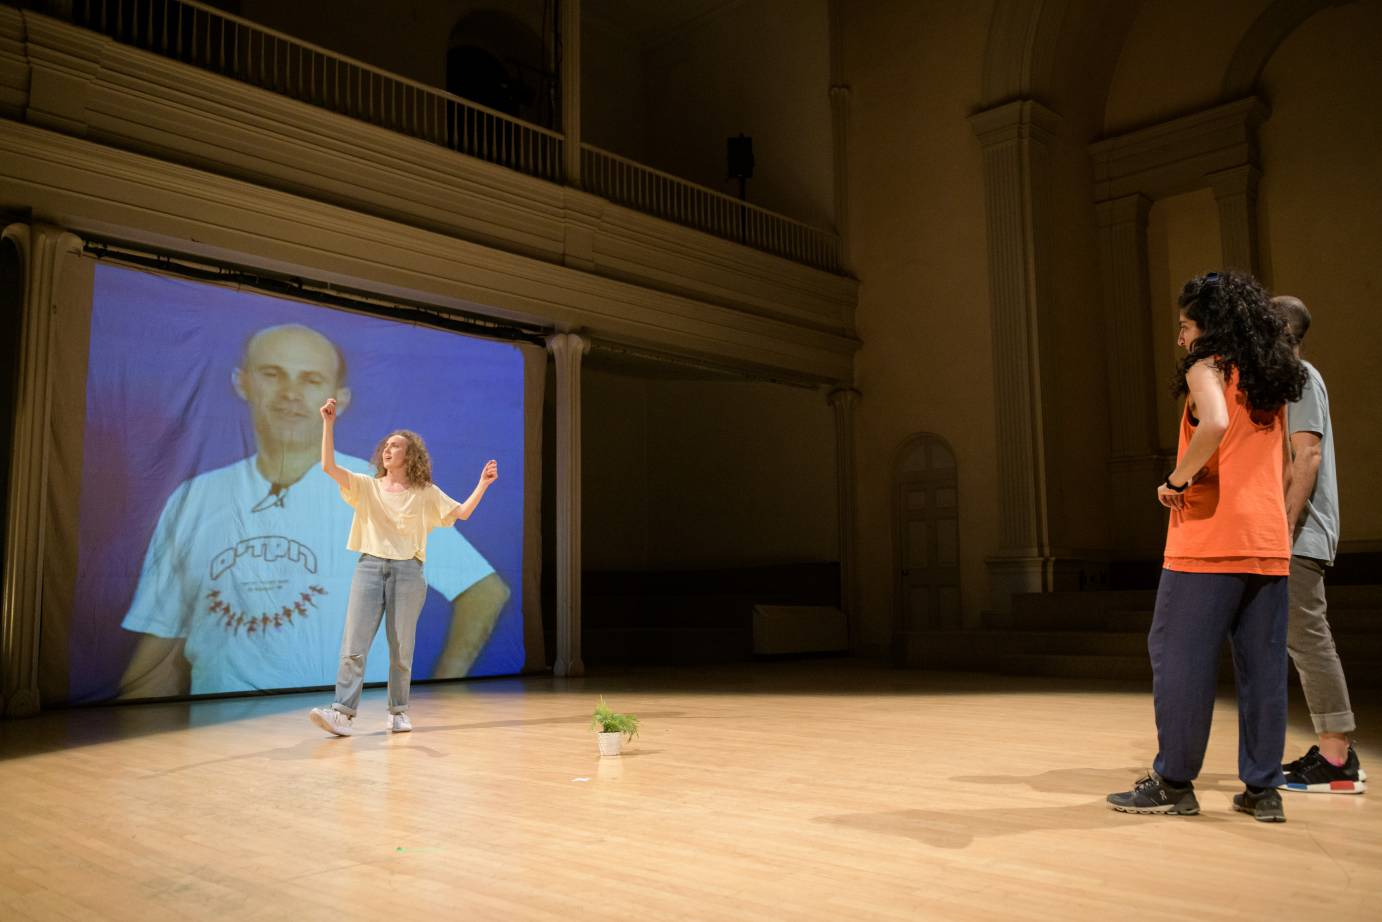 A woman dances in front of a projection of a man while people watch